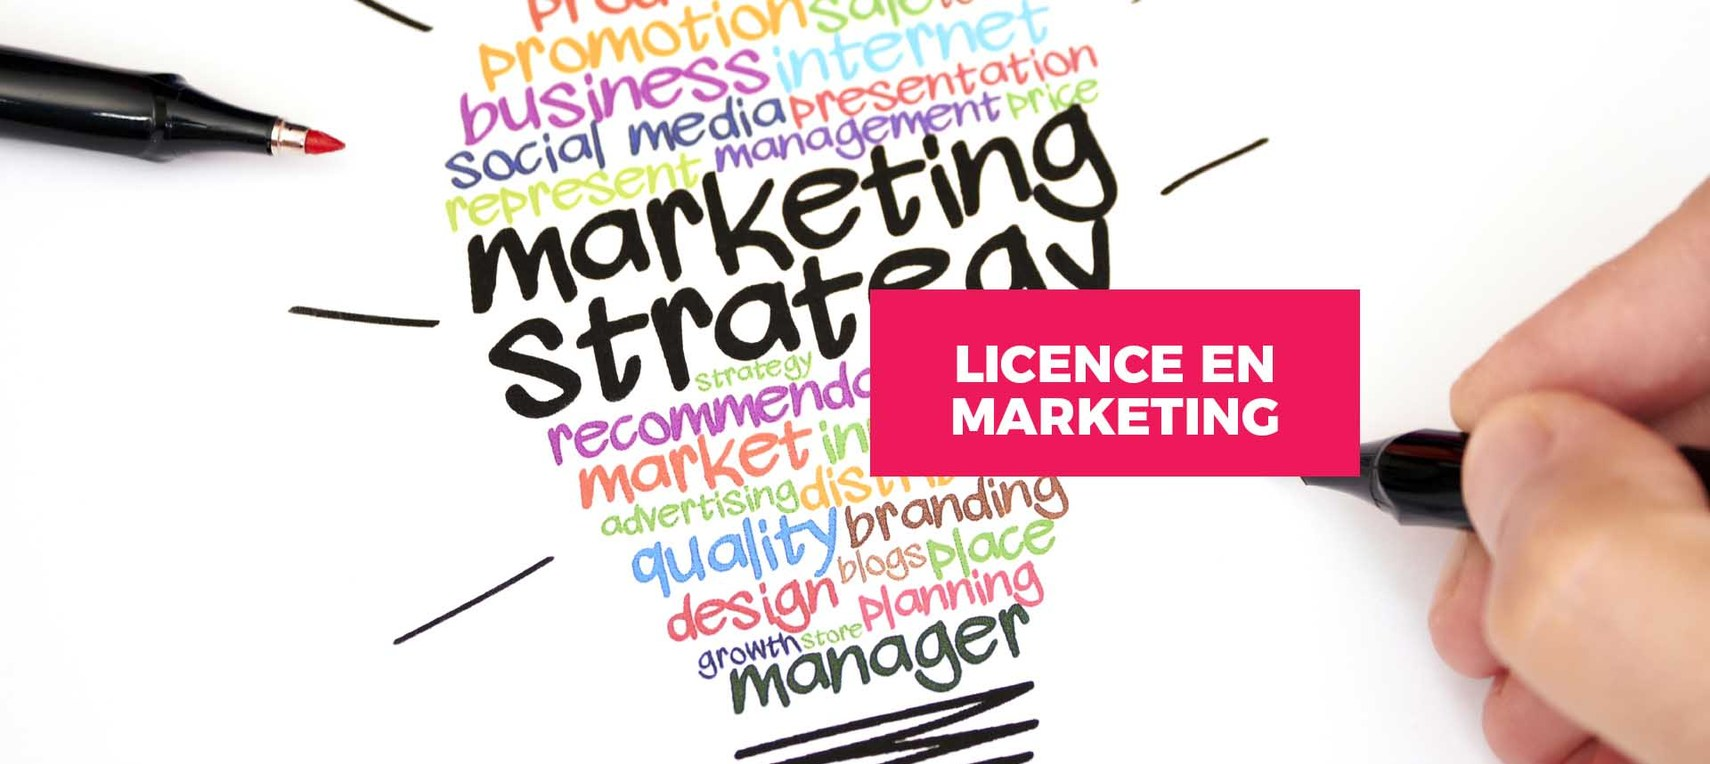 Licence en marketing